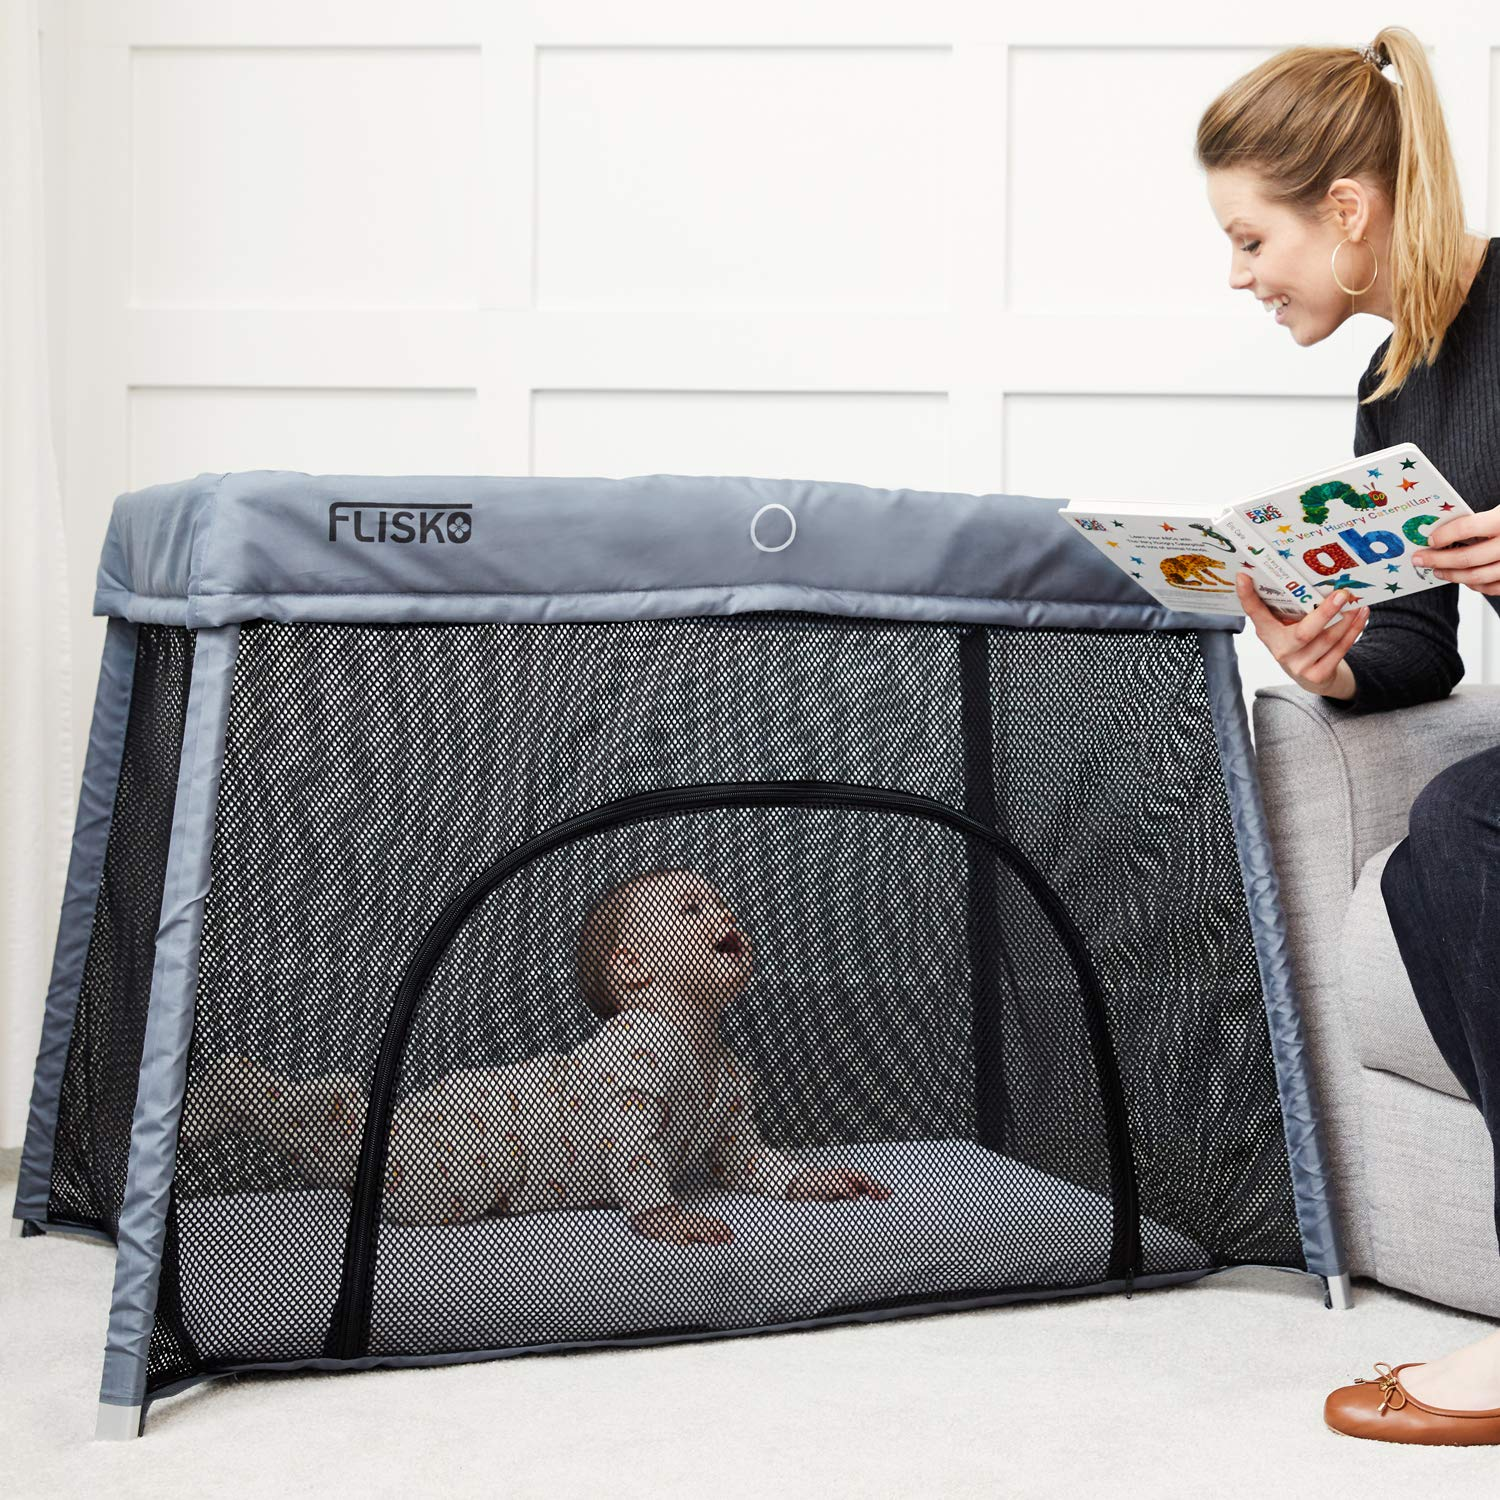 Pack Play-Yard for Infants /& Toddlers Lightweight Mattress /& Fitted Sheet Included Portable Crib Playpen Flisko 2 in 1 Travel Crib /& Bassinet Baby Bed Simple Assembly /& Easily Collapsible